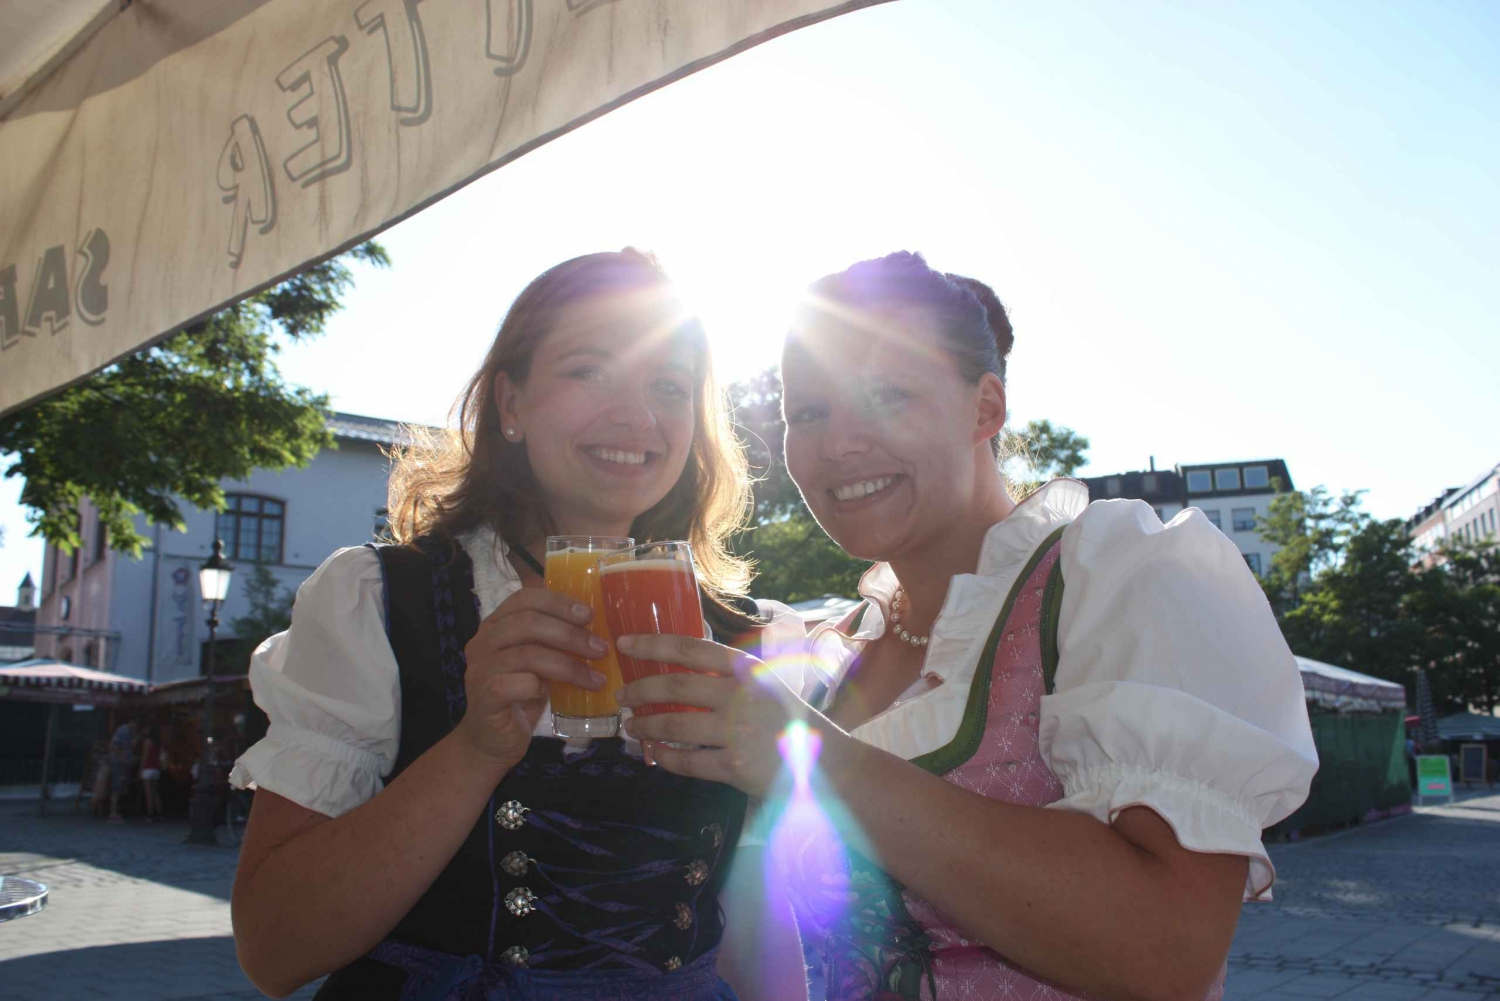 Old Town Culinary Stroll: Munich's Delicacies